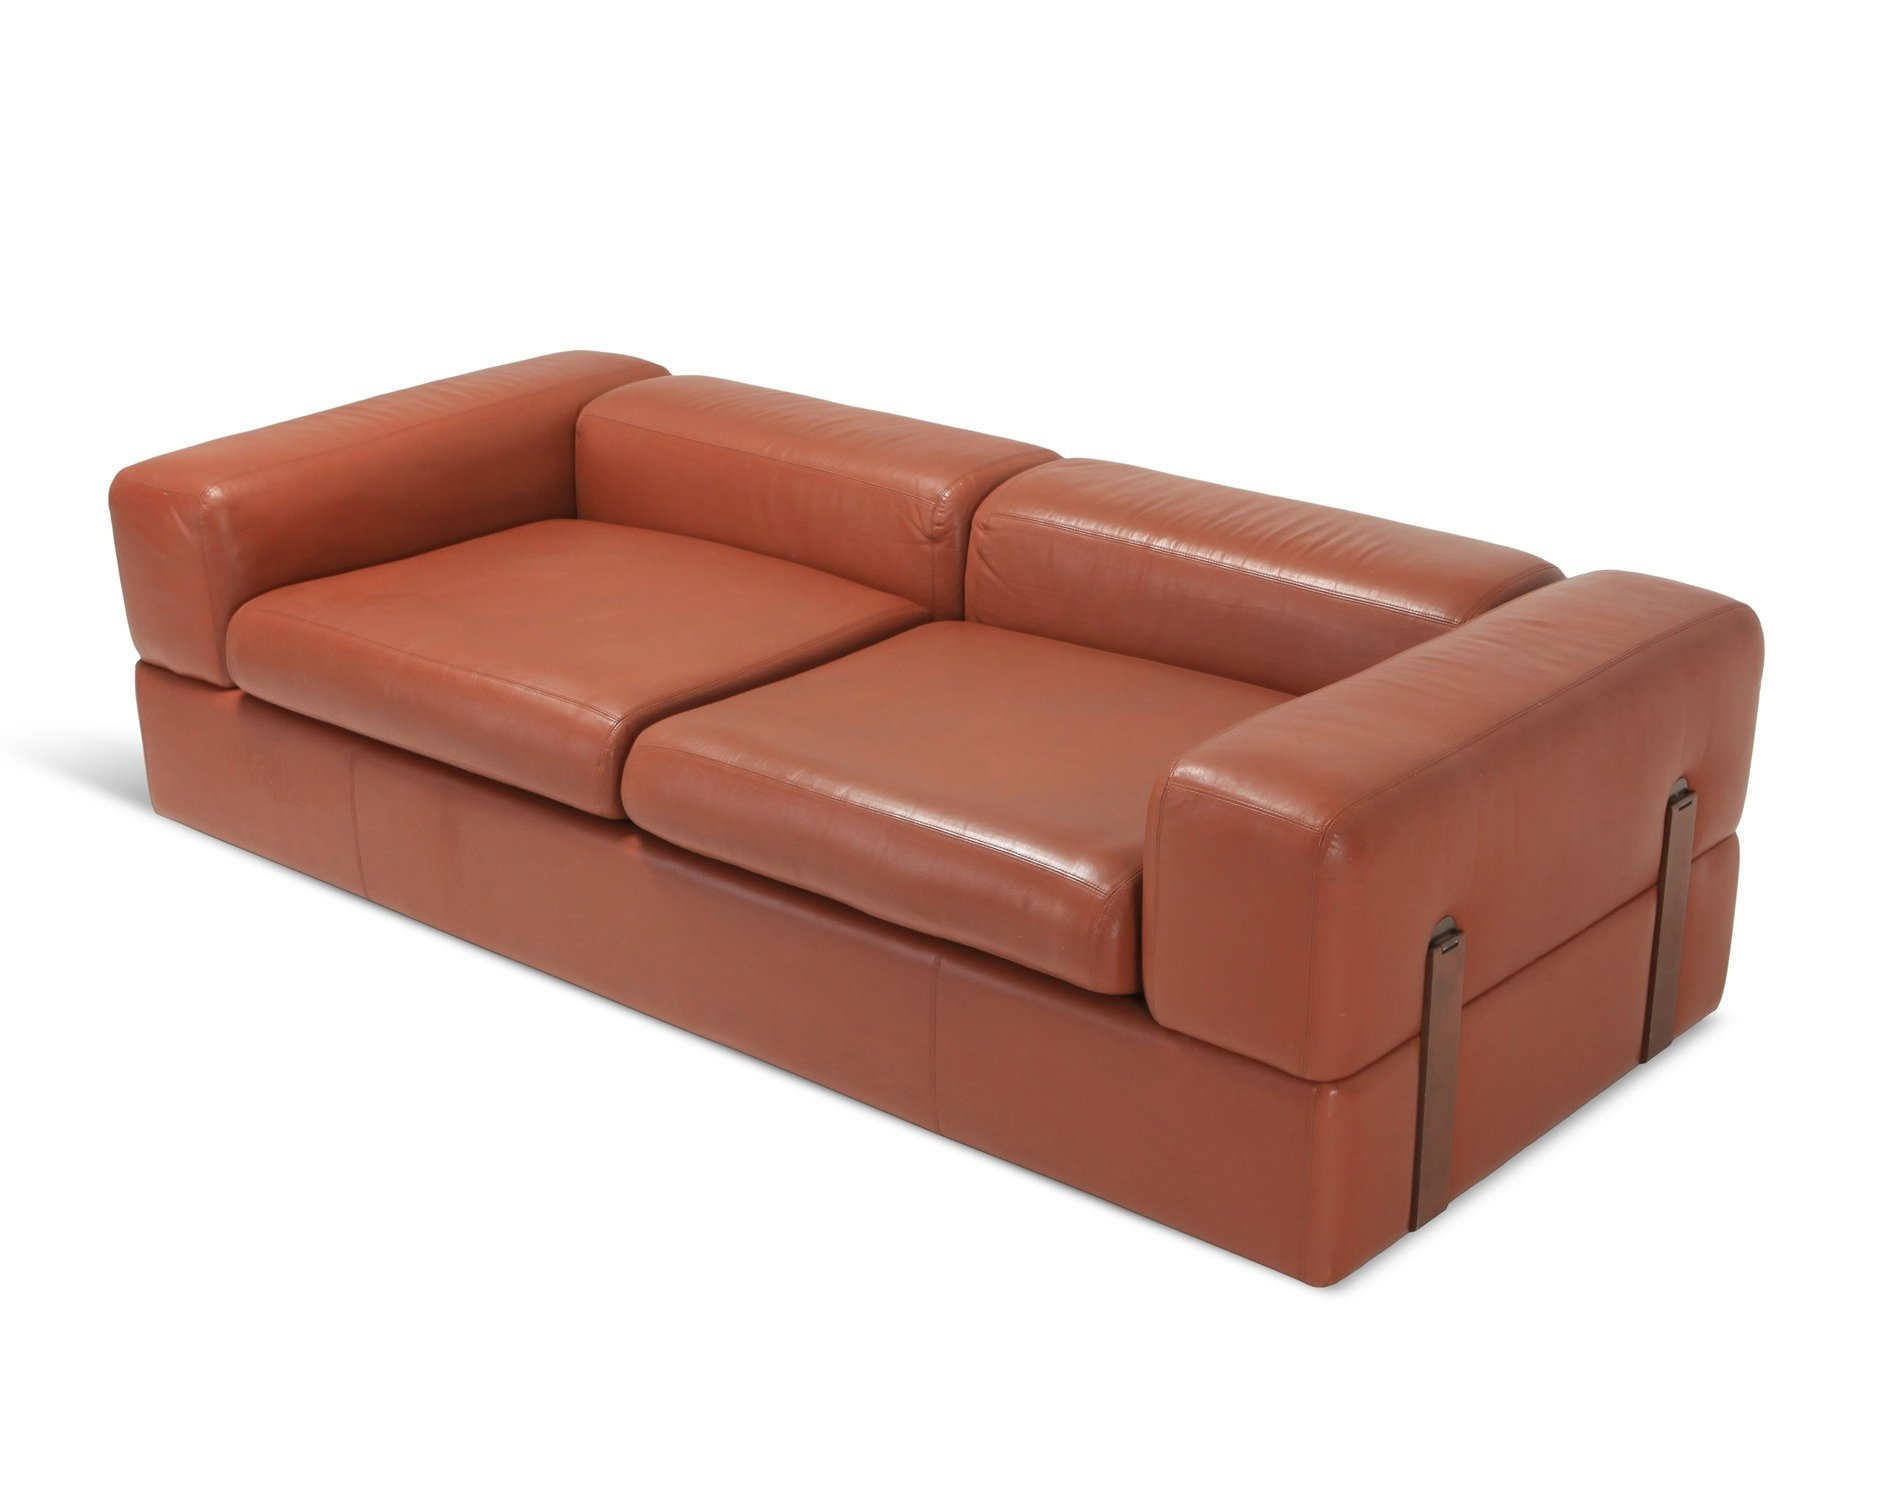 Minimalist Cognac Leather Sofa Bed By